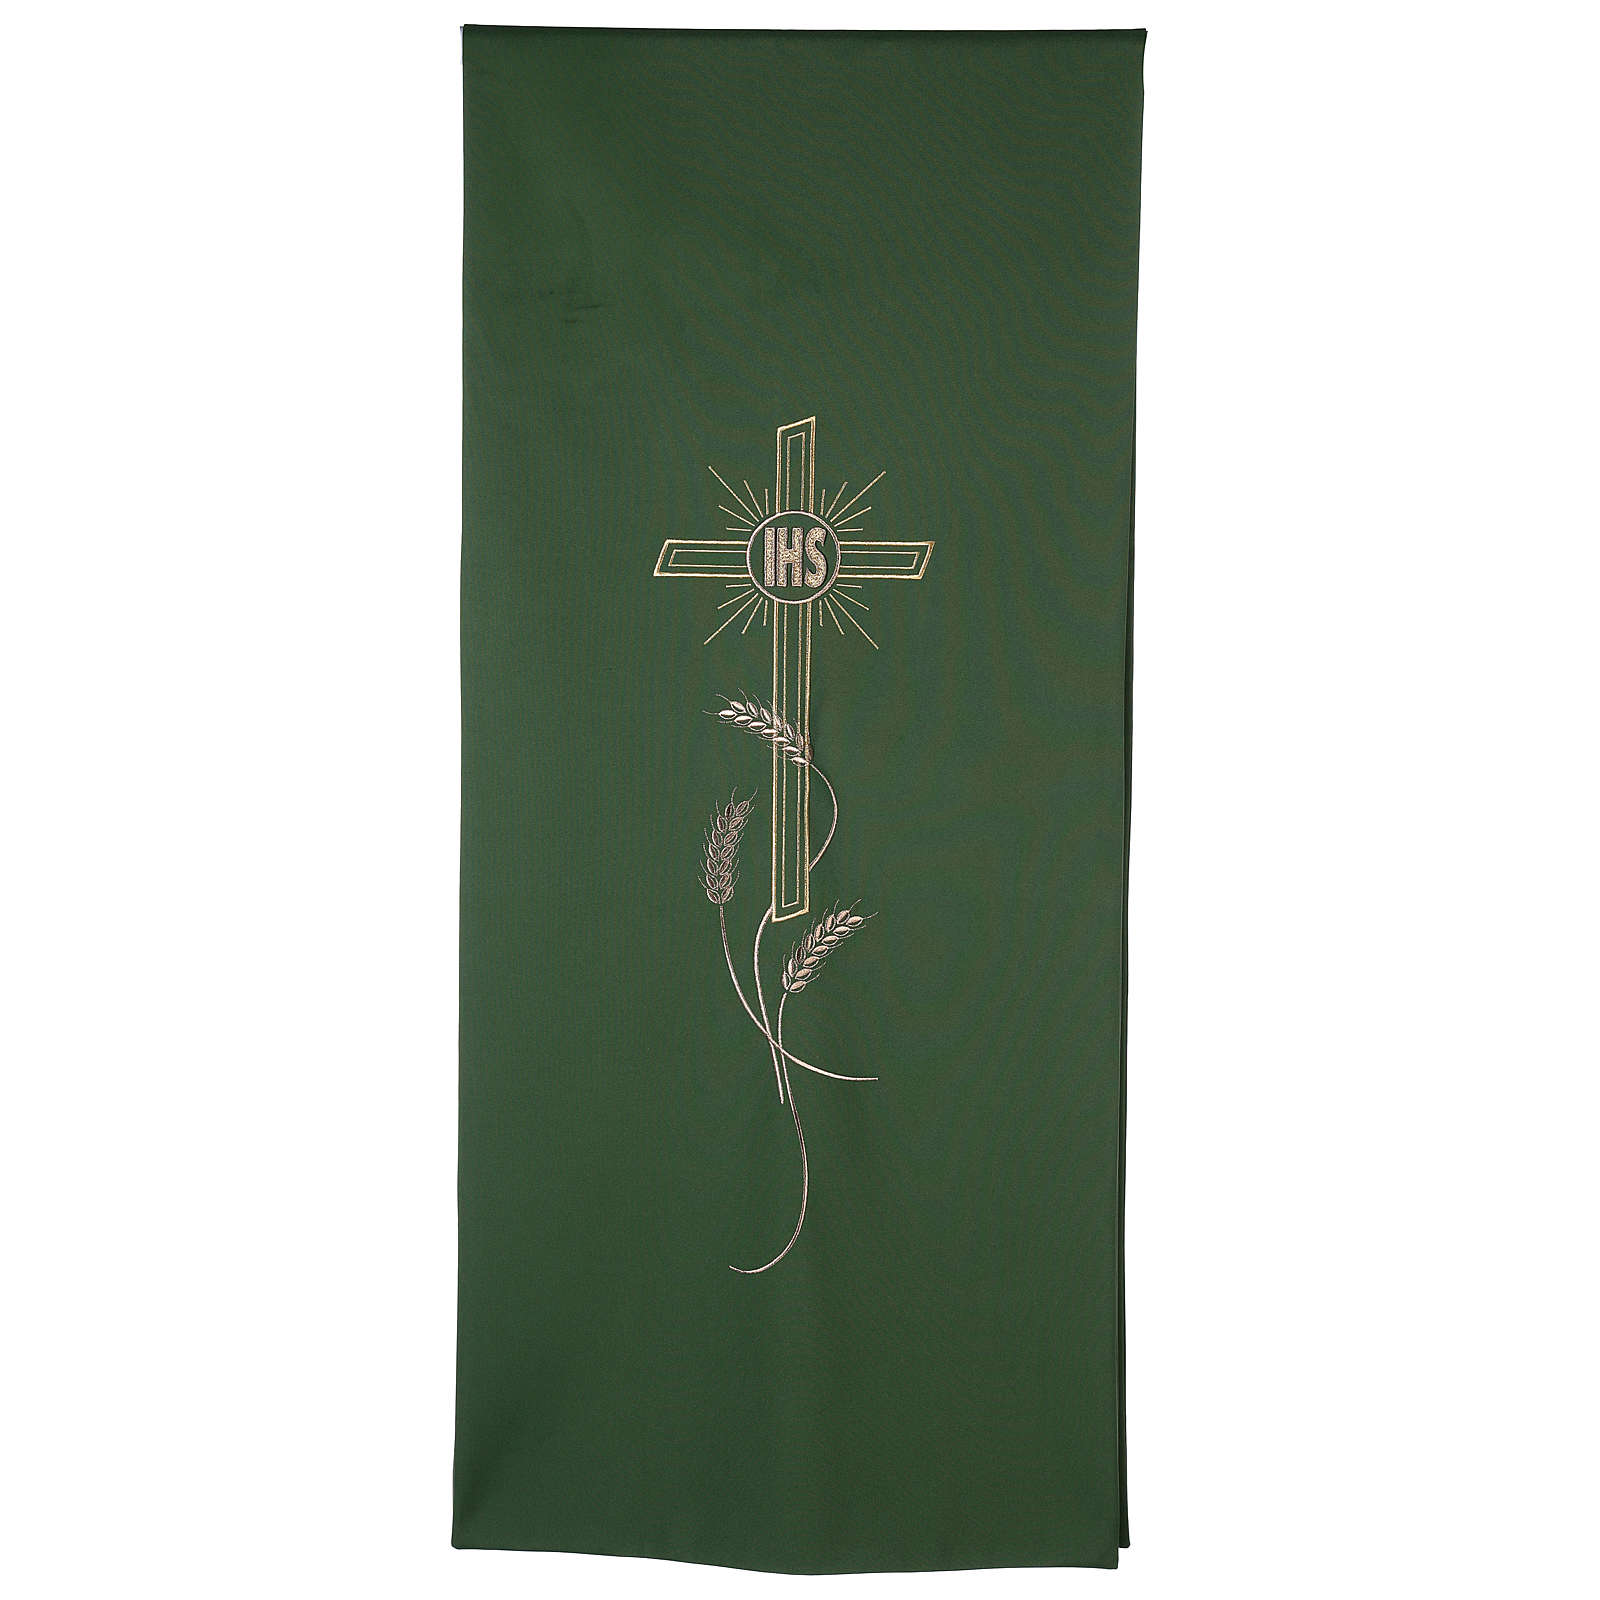 IHS lectern cover 4